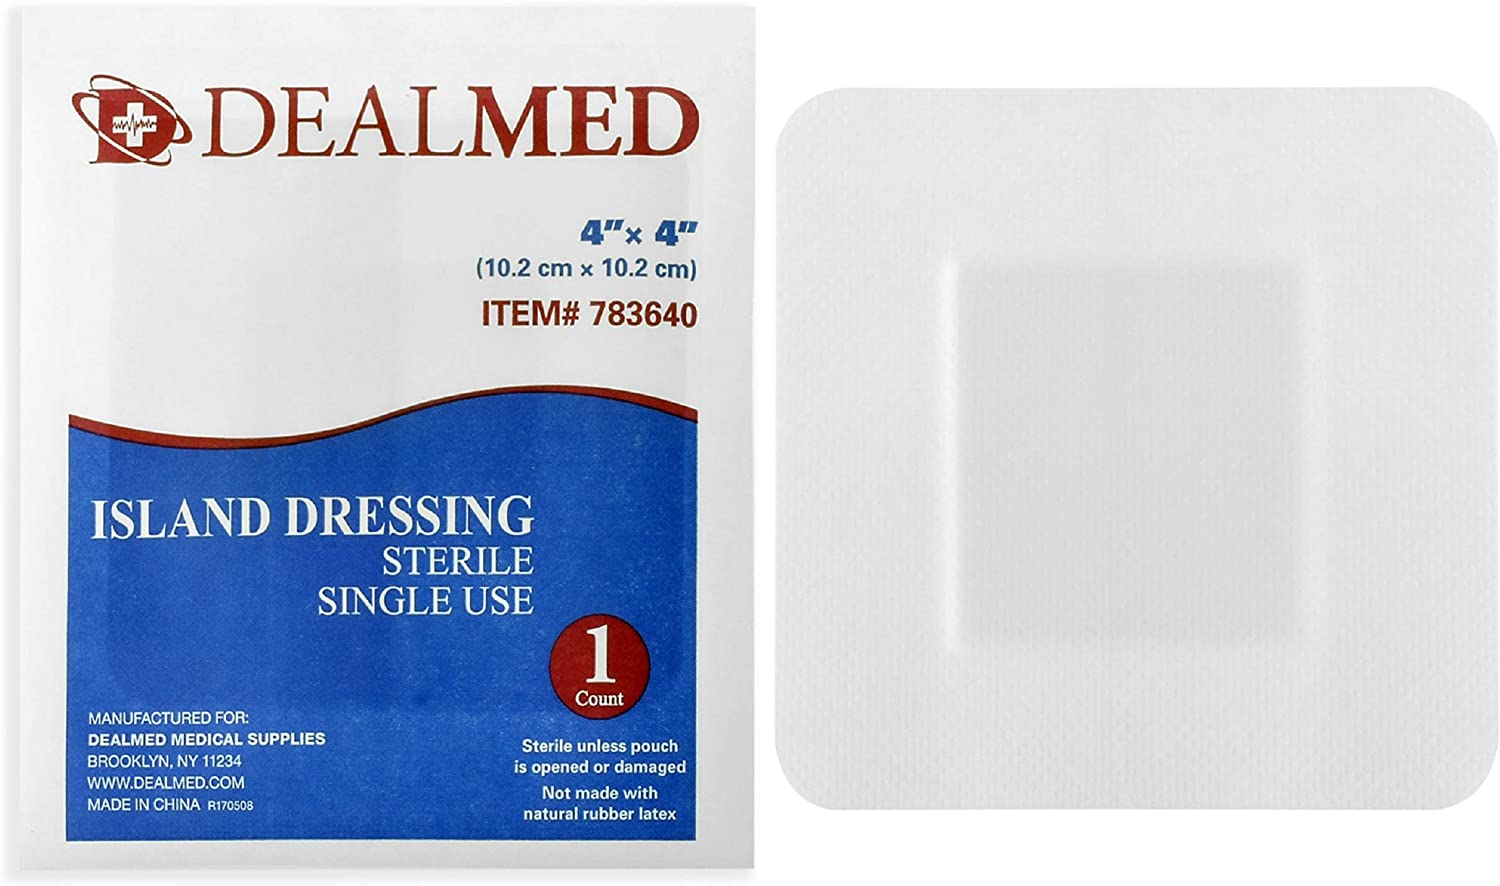 "Dealmed Sterile Bordered Gauze Island Dressings, Non-Stick, Latex-Free, 4"" x 4"", 25 Count"